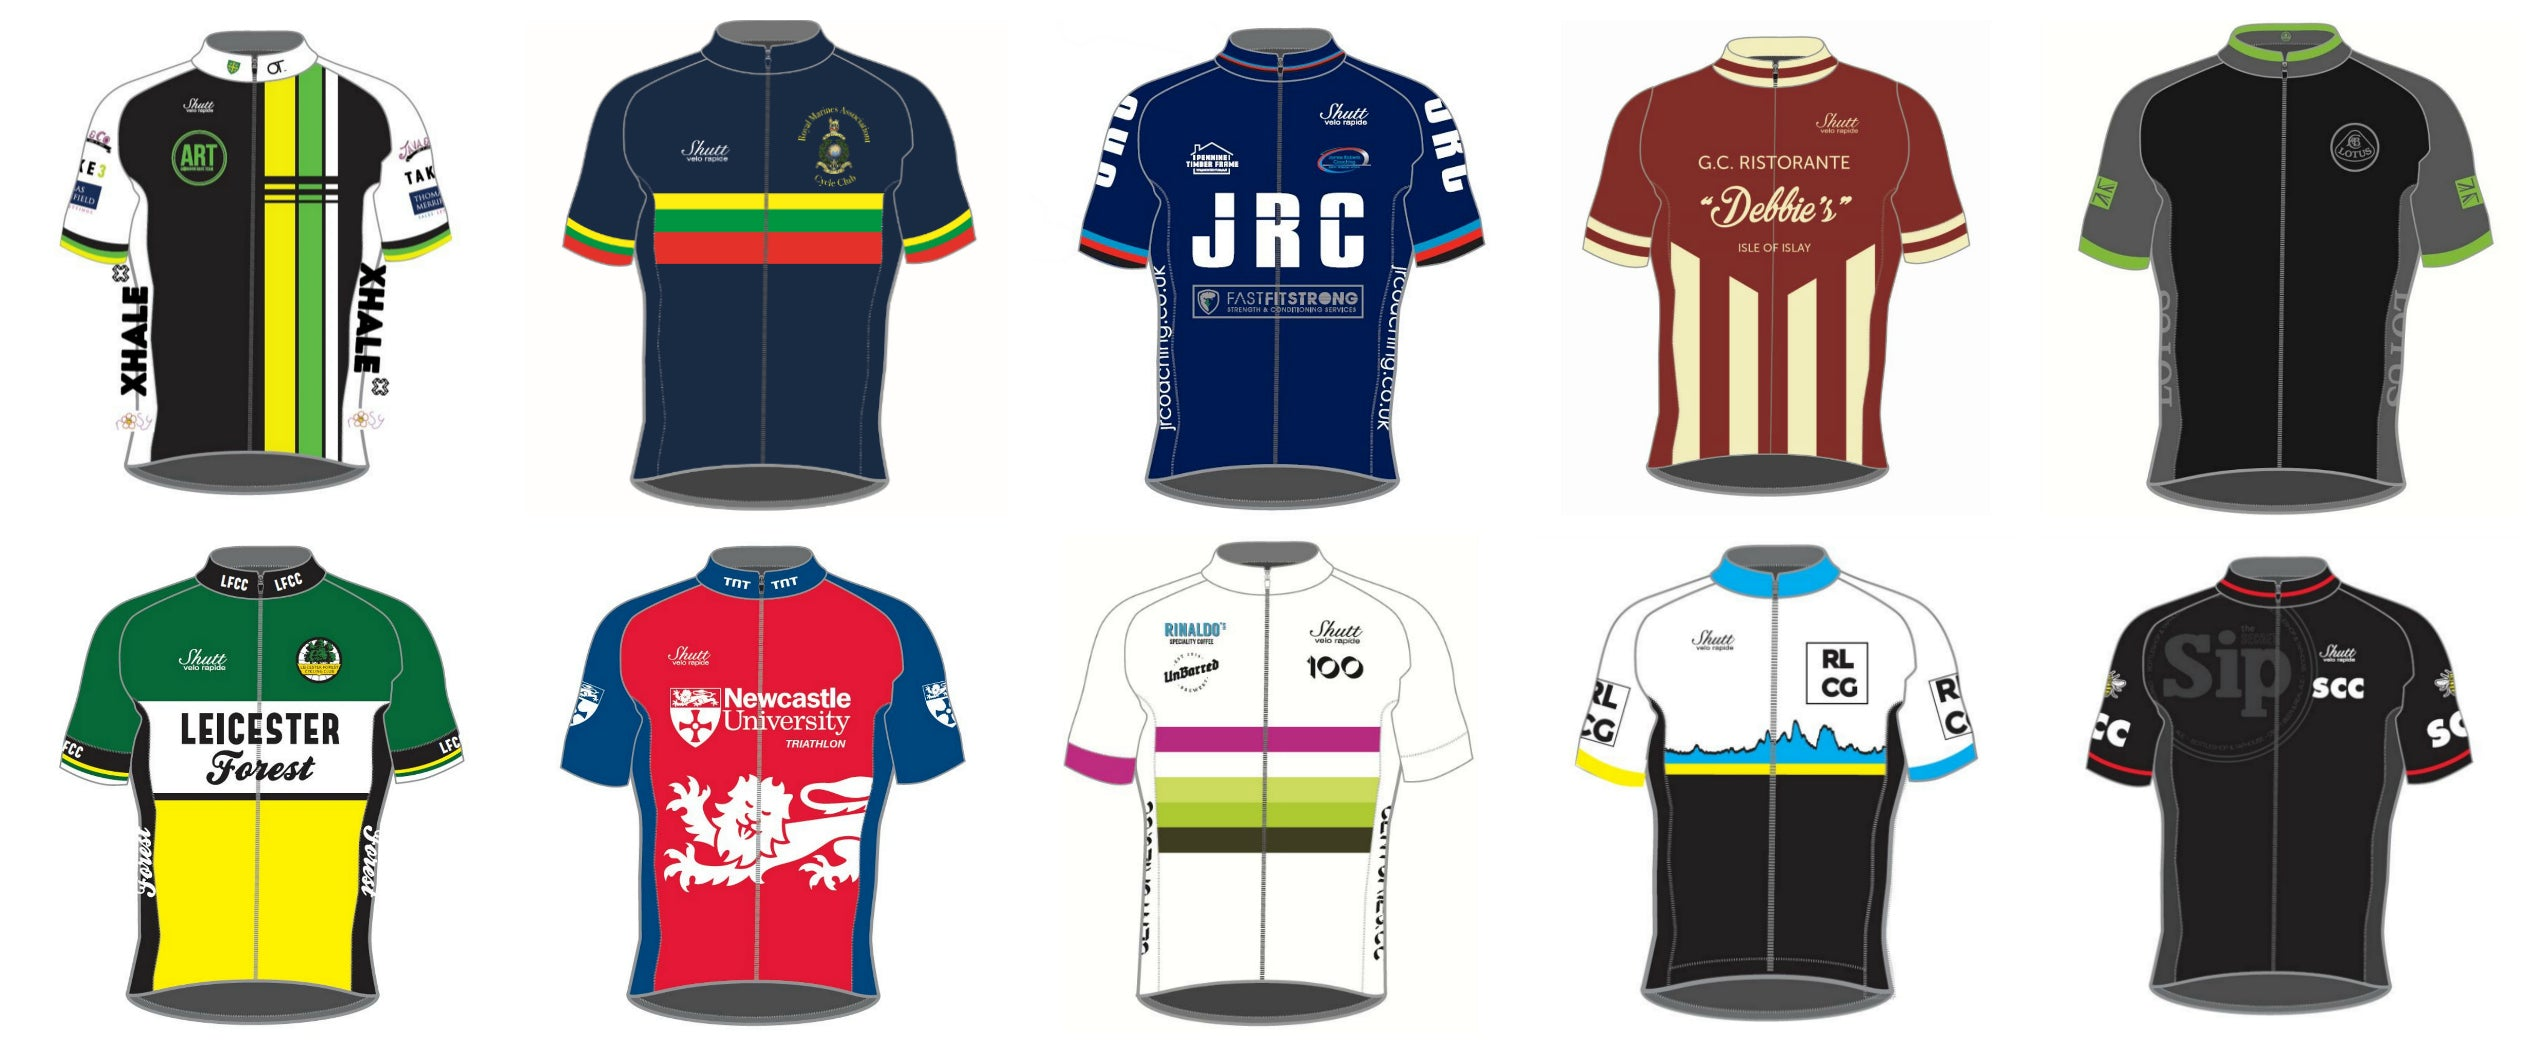 Custom Cycling Kits